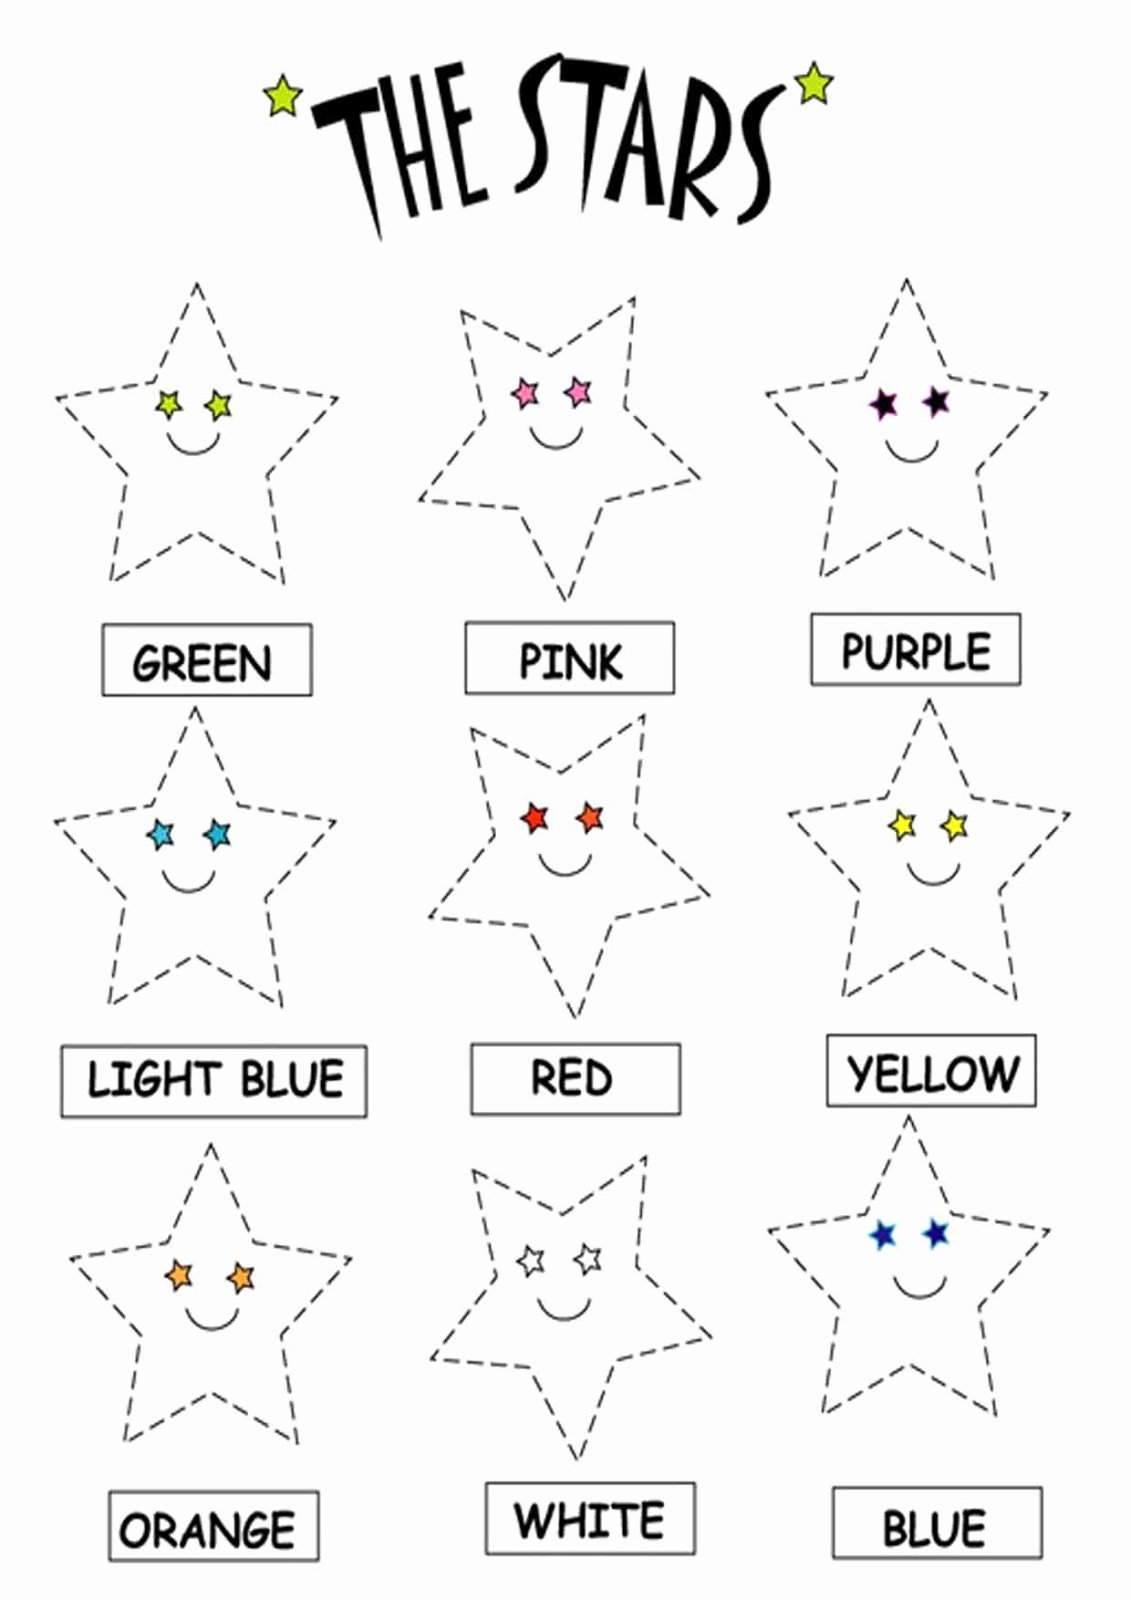 Star Worksheets for Preschoolers Lovely Kids Page Color the Stars Worksheets